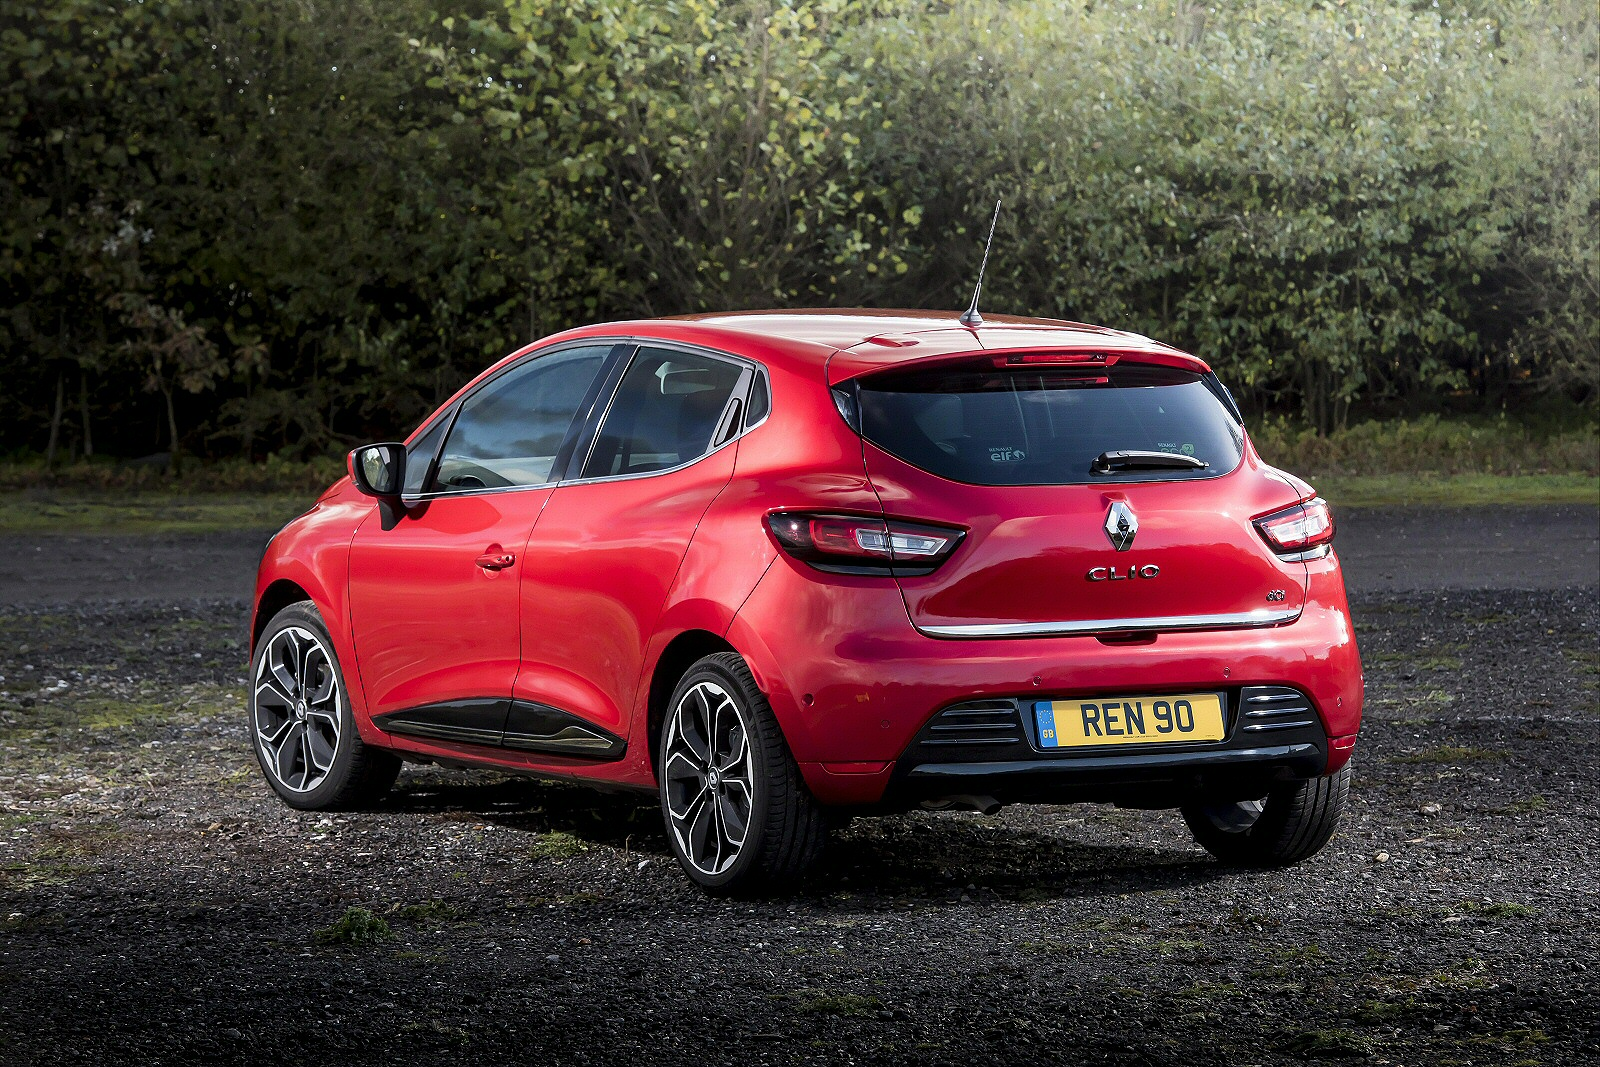 new renault clio 1 5 dci 90 gt line 5dr diesel hatchback. Black Bedroom Furniture Sets. Home Design Ideas